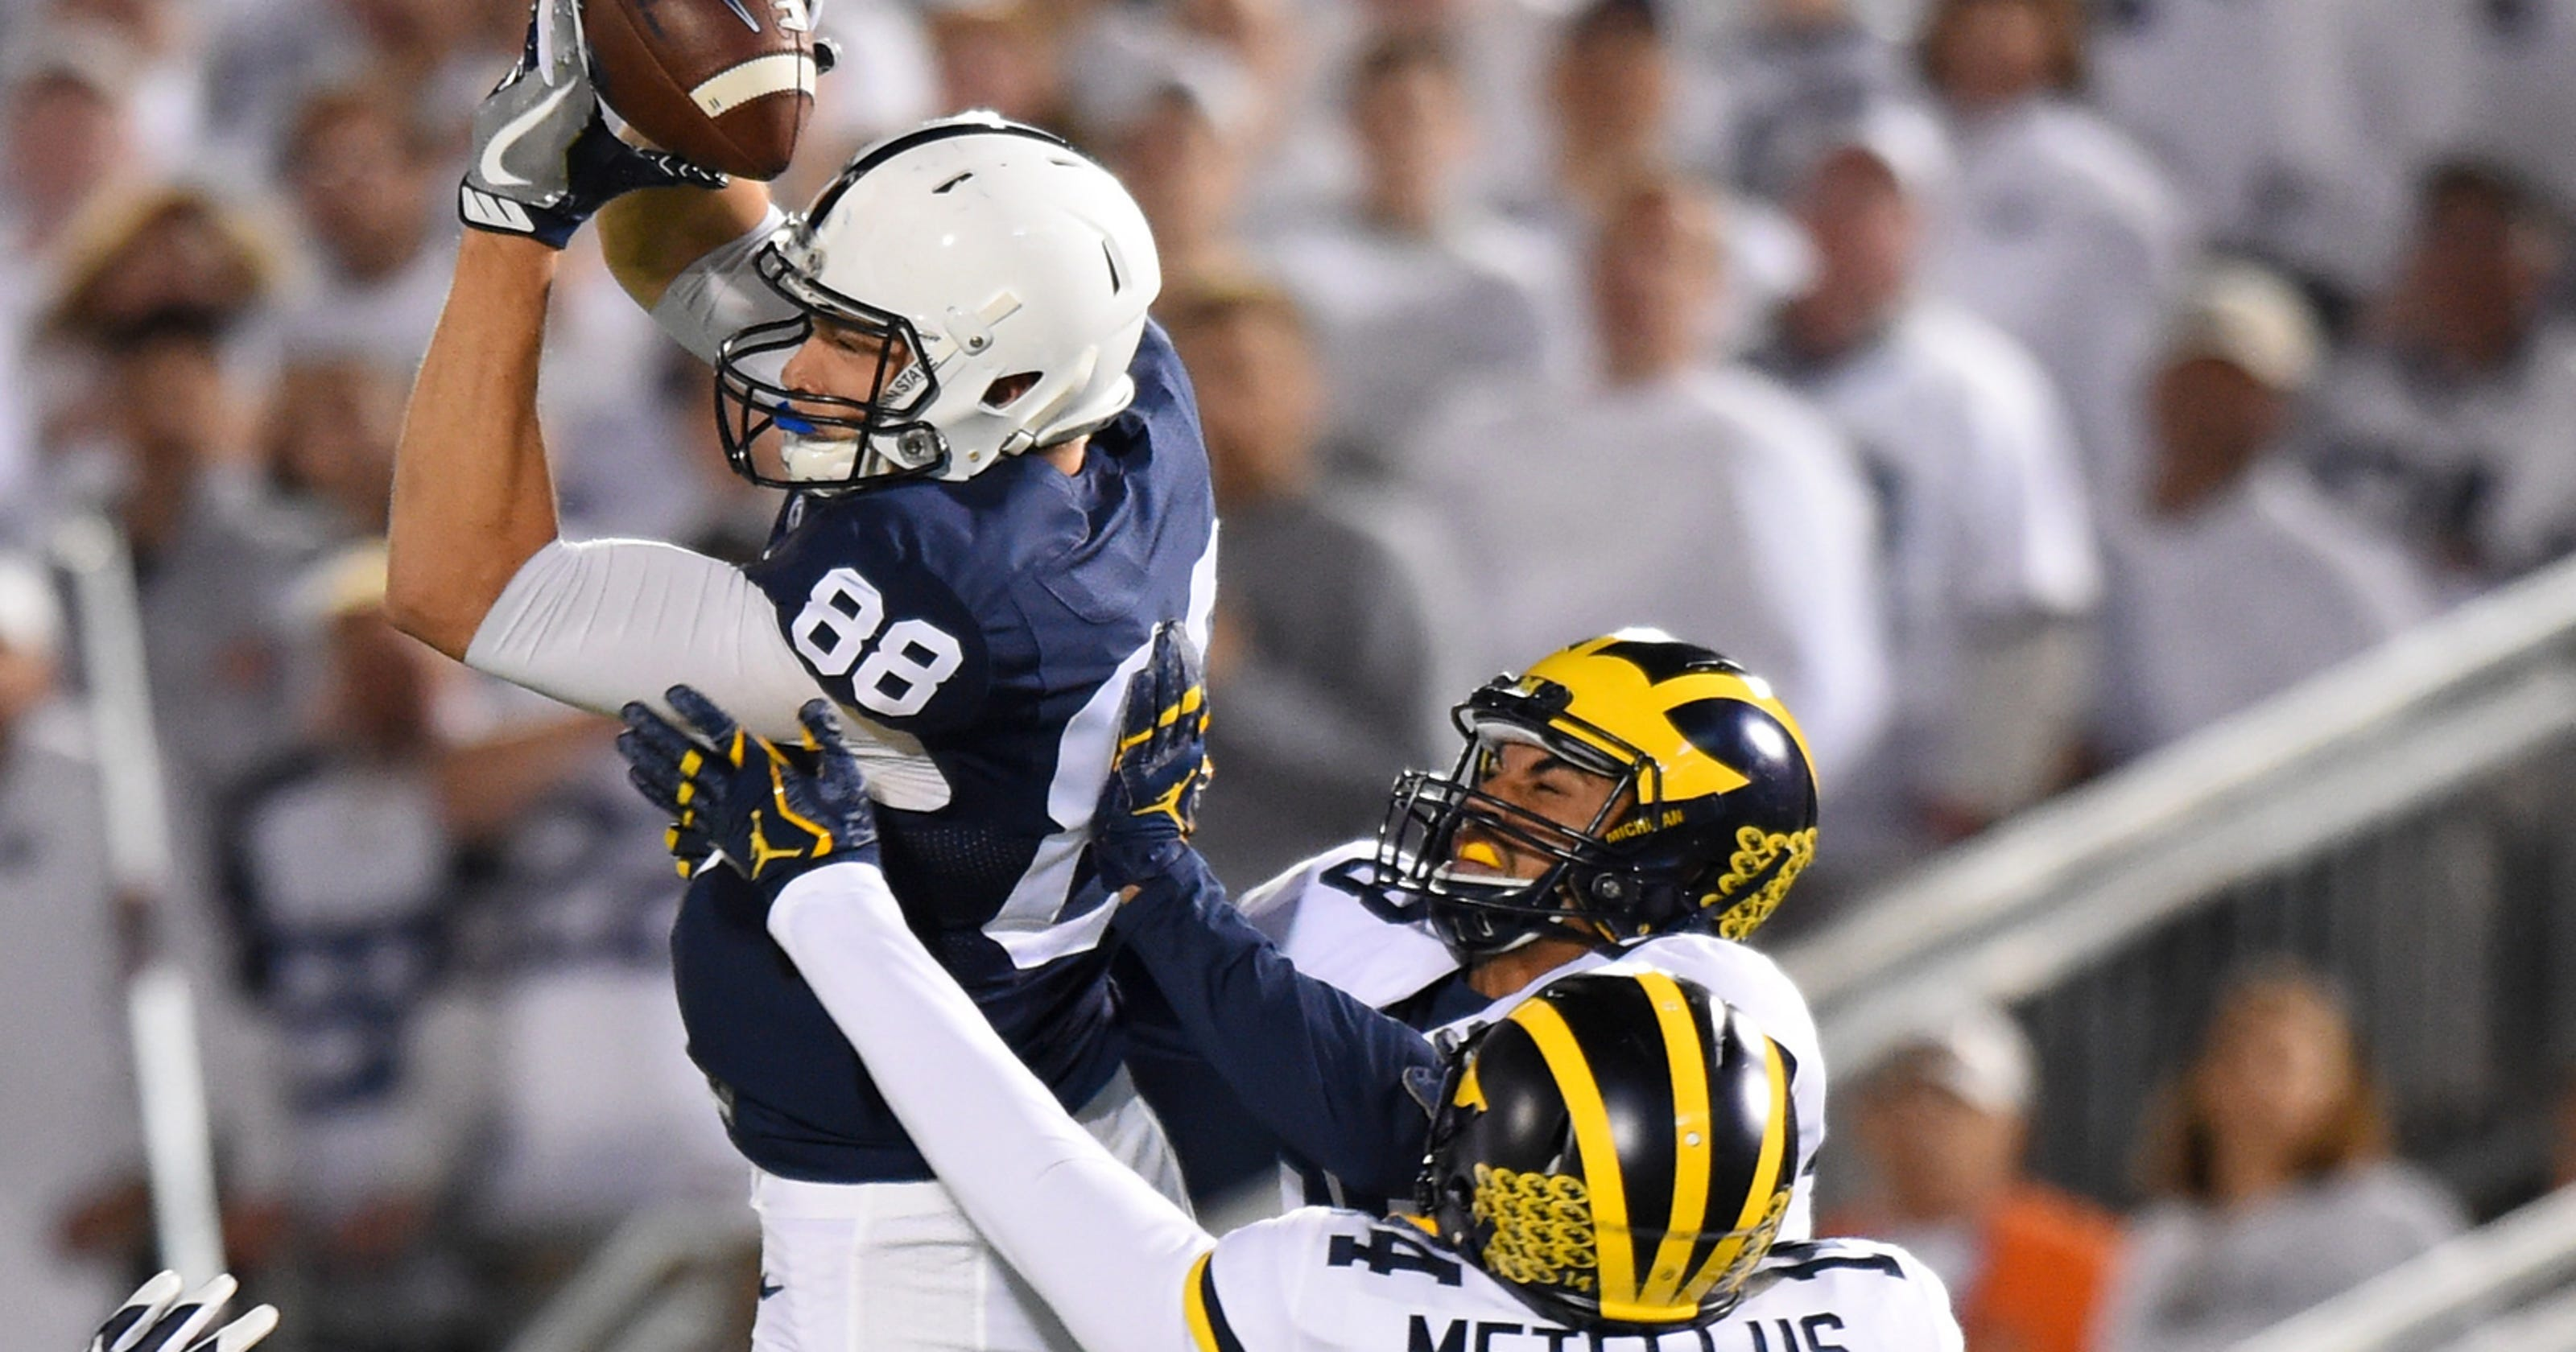 Michigan s defense wilts in loss 43-13 at No. 2 Penn State c9d33688f